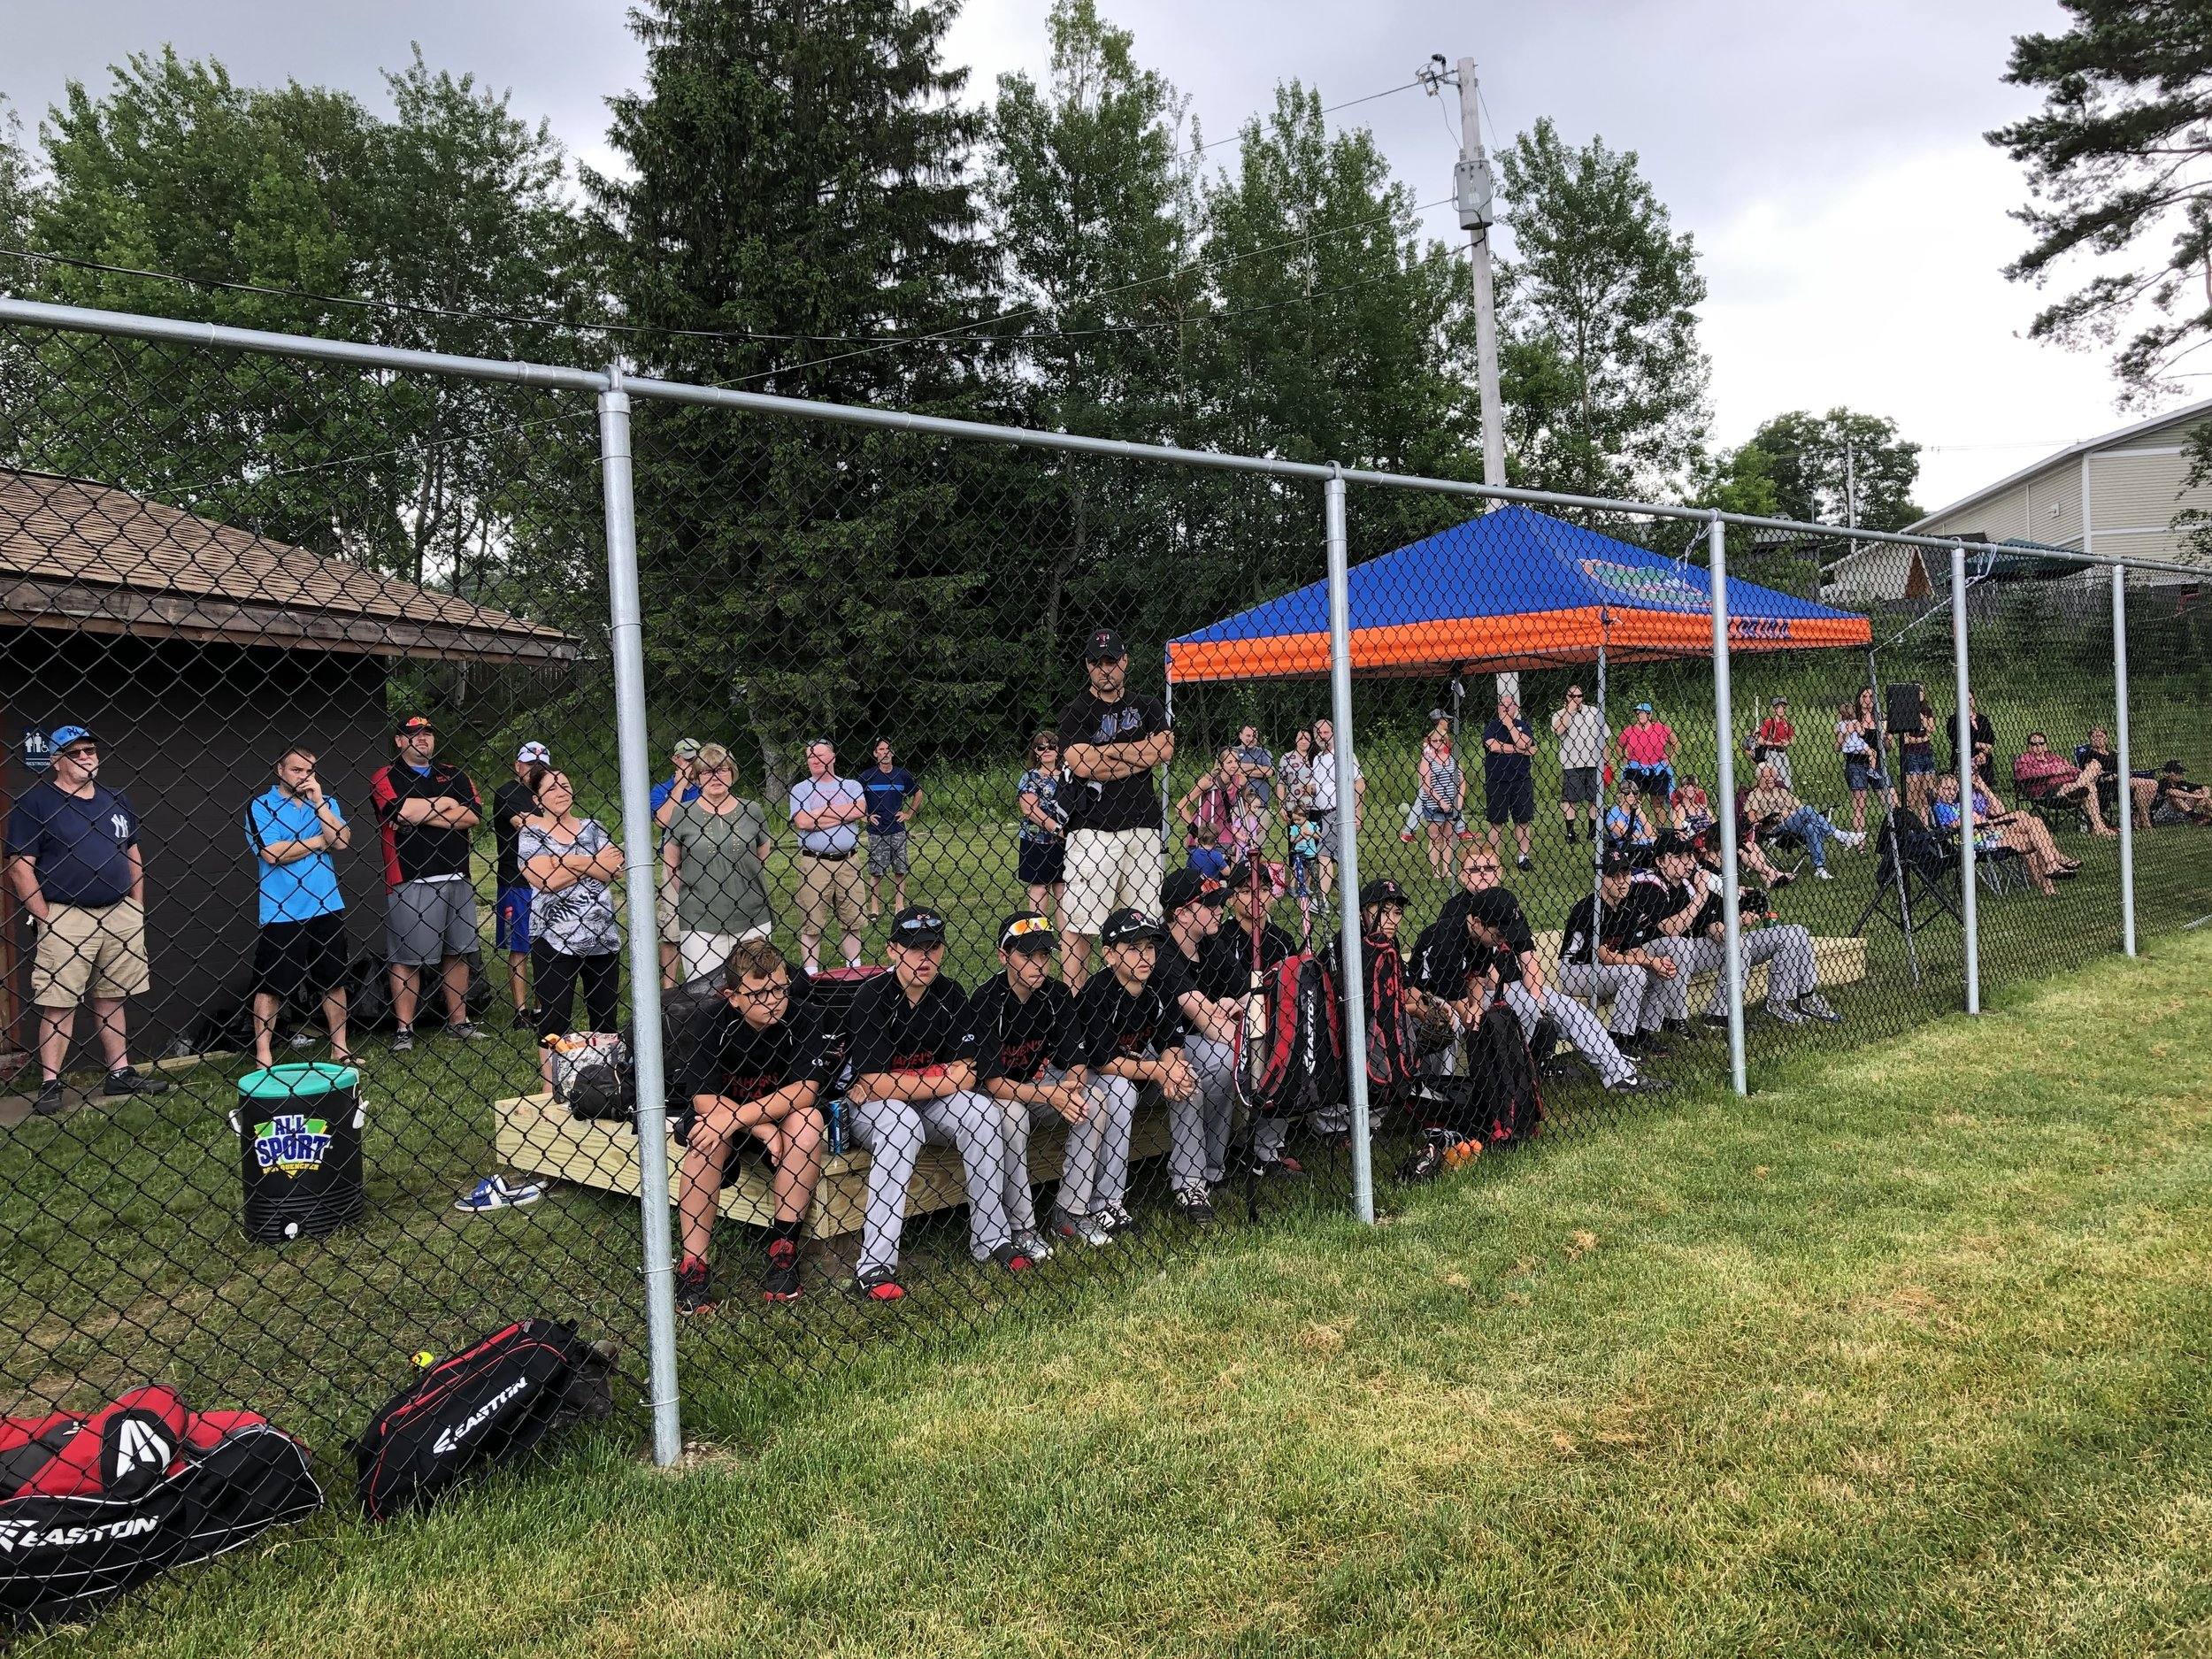 Tupper Lake baseball players listen to the opening ceremonies Saturday before the ribbon-cutting of the new field adjacent to the Little Logger Playground in the municipal park.